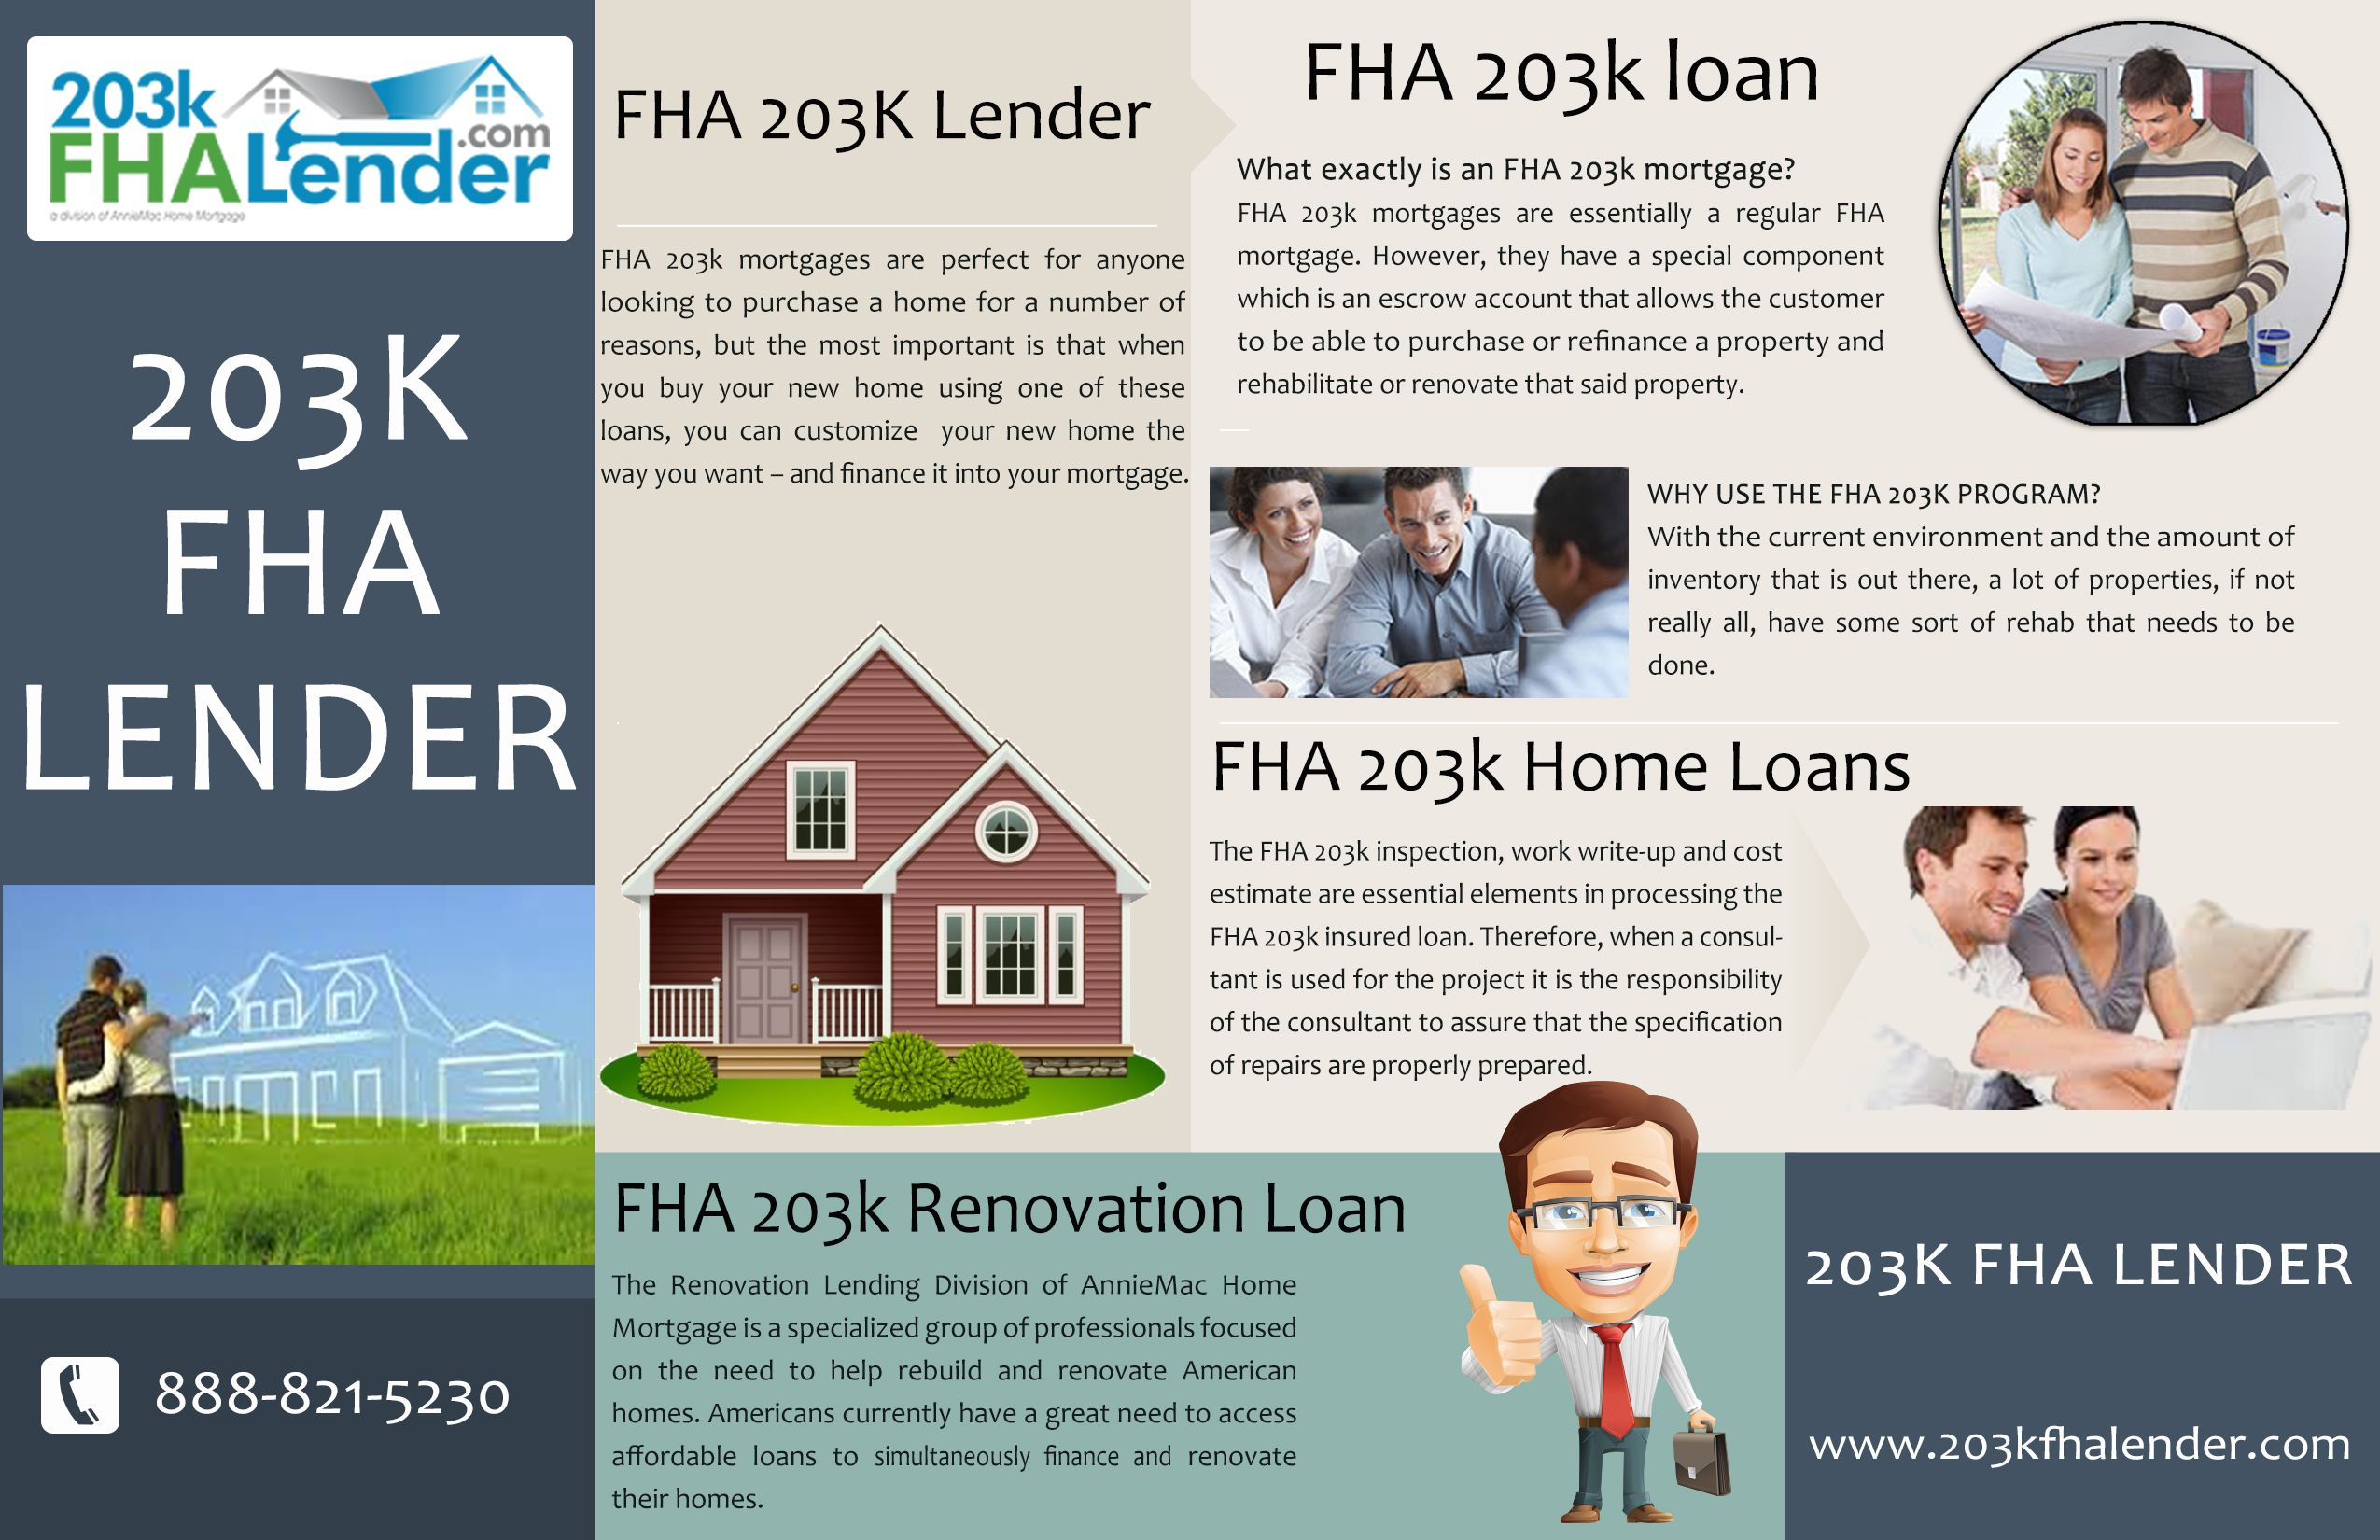 Fha 203k loan requirements and guidelines for renovation has the same qualifying requirements as a standard